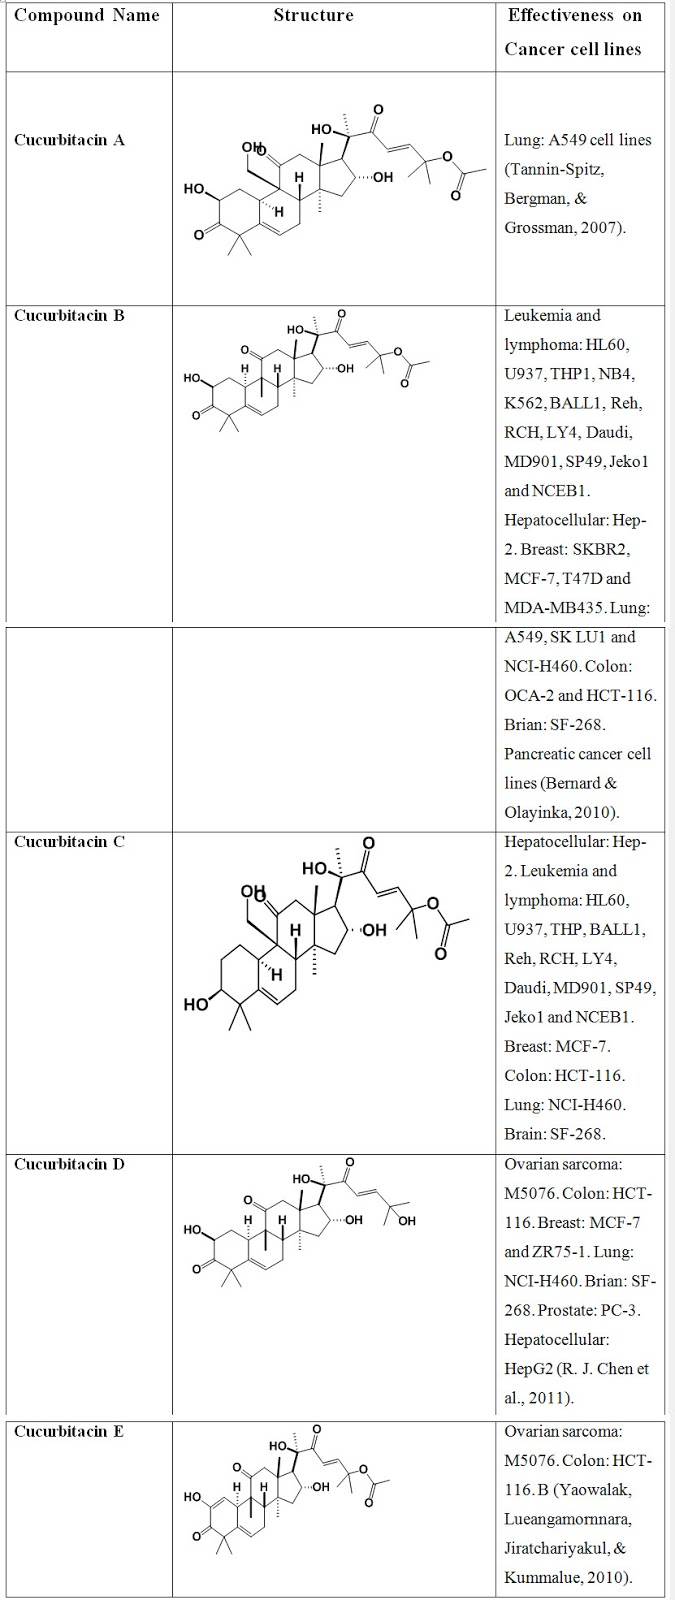 Compounds structure and their effectiveness on cancer cell lines